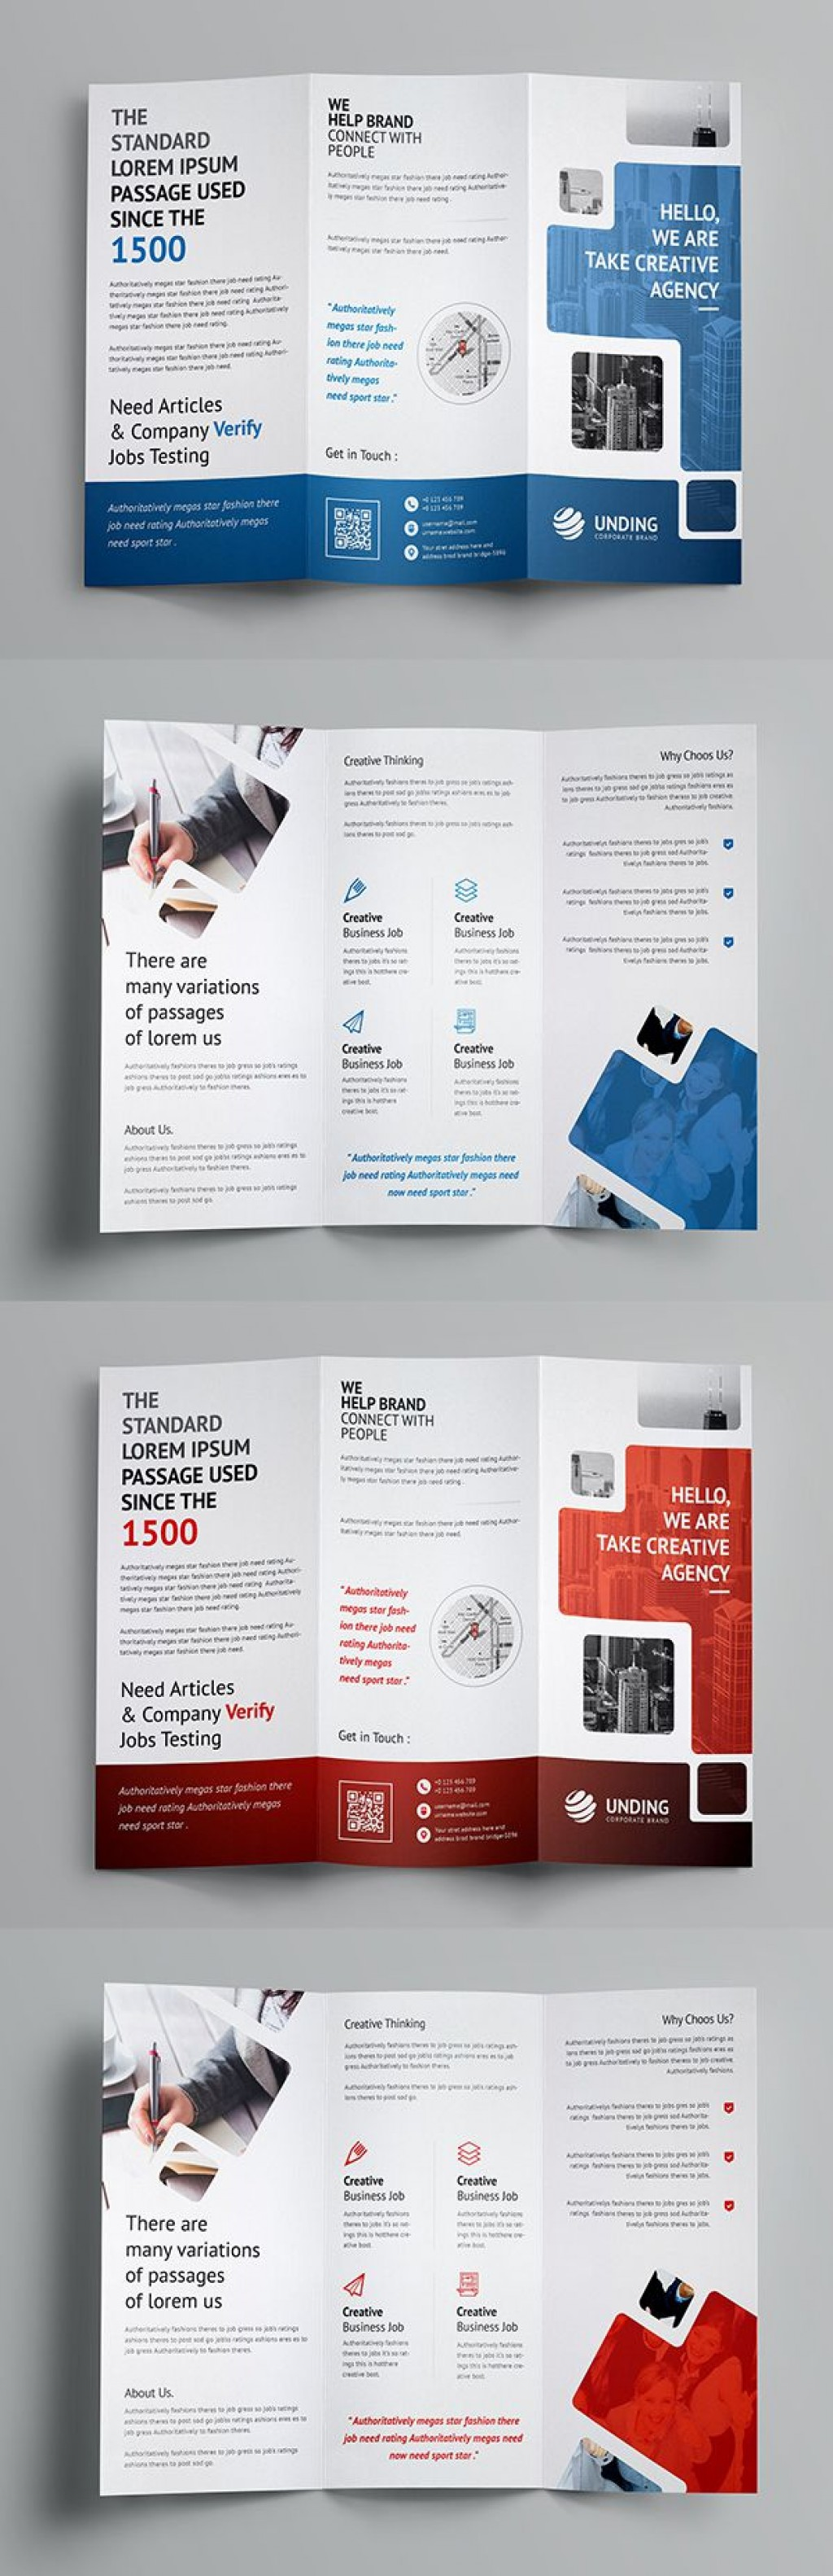 004 Remarkable Three Fold Brochure Template Word Free High Def  3 DownloadLarge